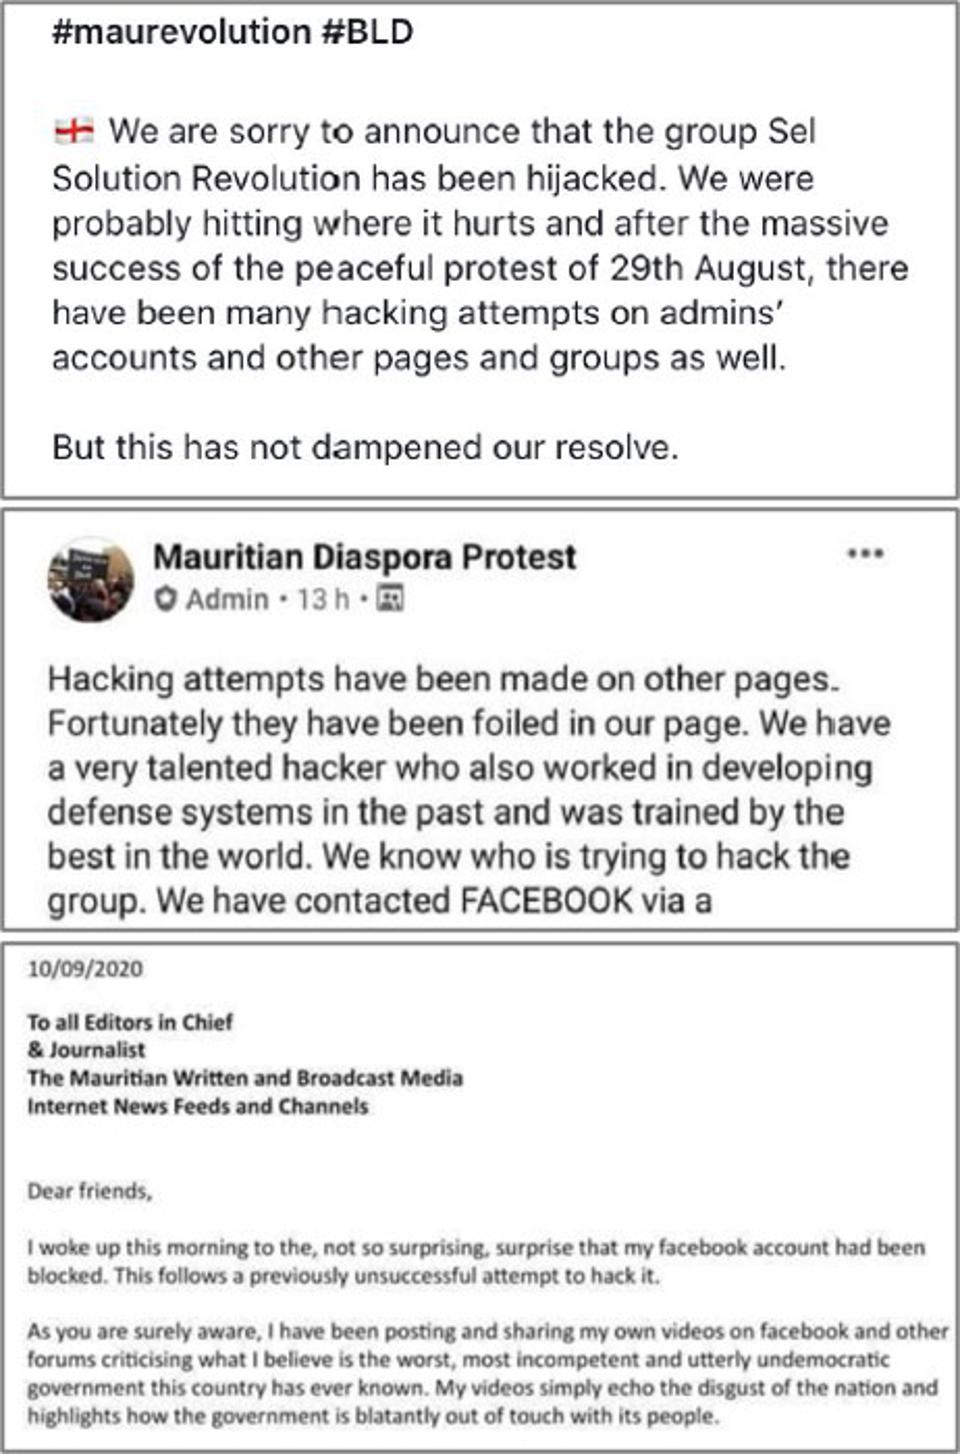 10 September 2020: a series of high profile accounts and groups have been complaining about restricted access to Facebook in the past few days.